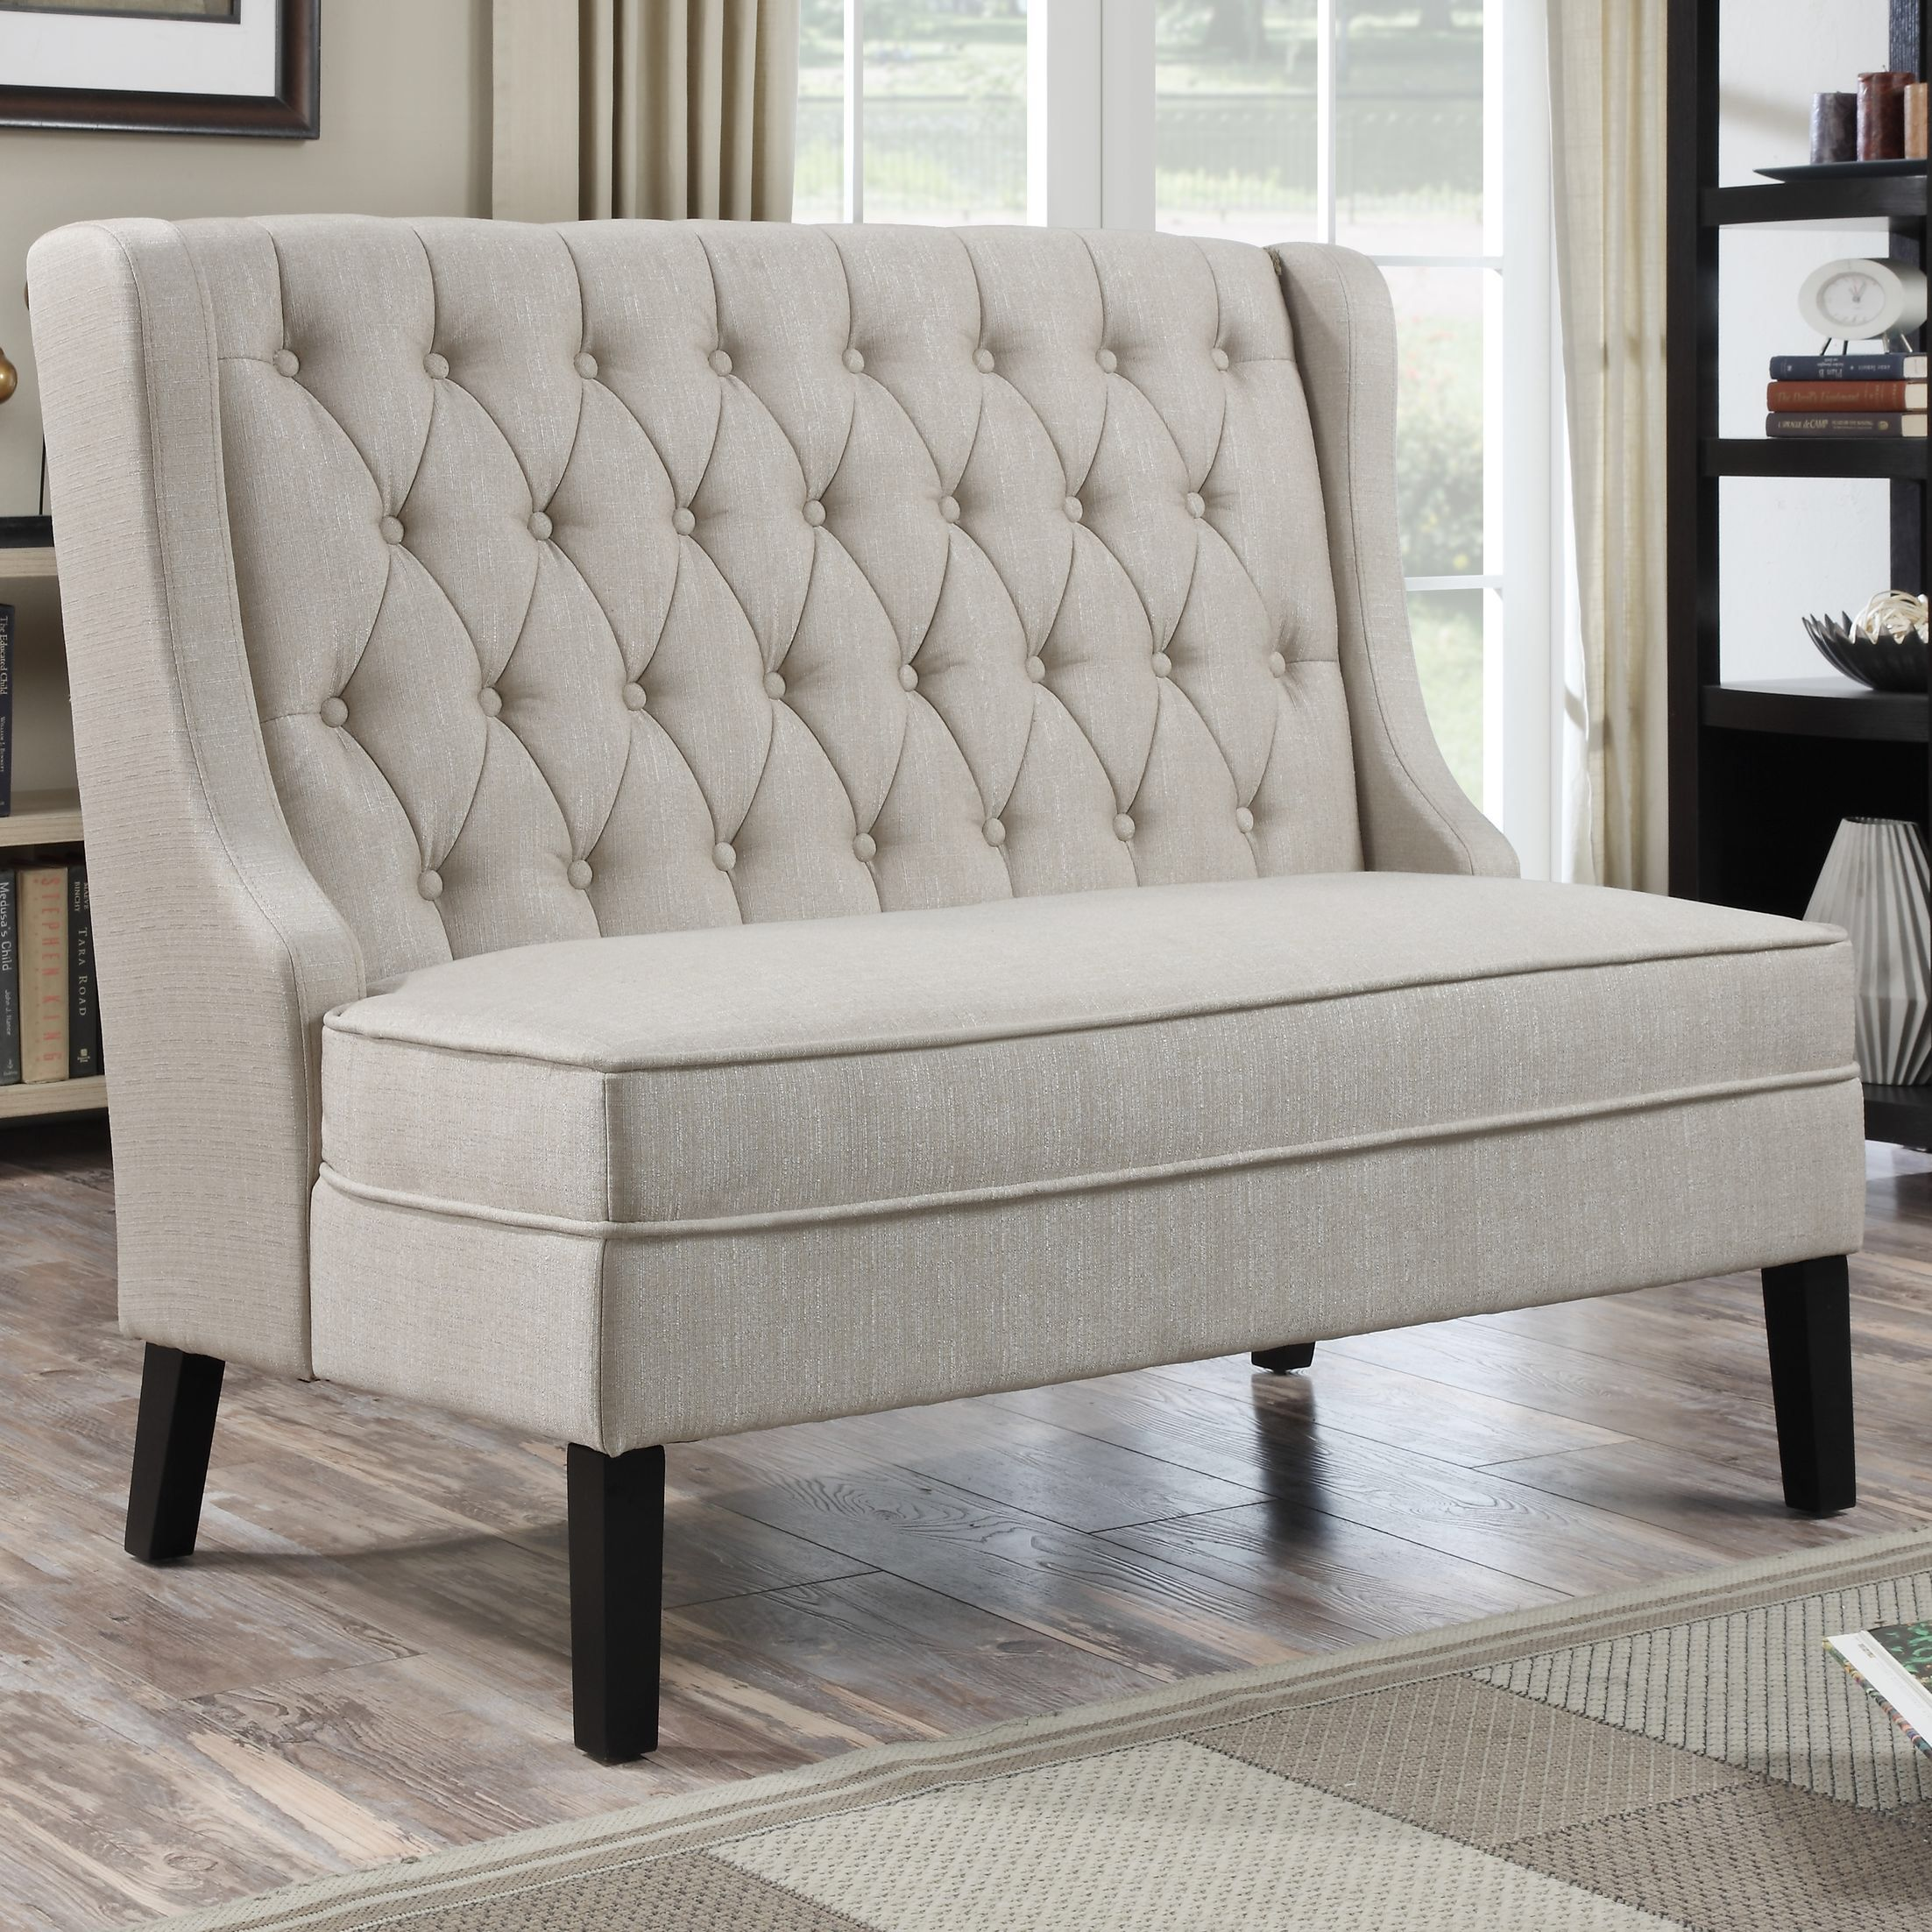 Dining room table with upholstered bench  Upholstered Banquette in Oatmeal  furniture  Pinterest